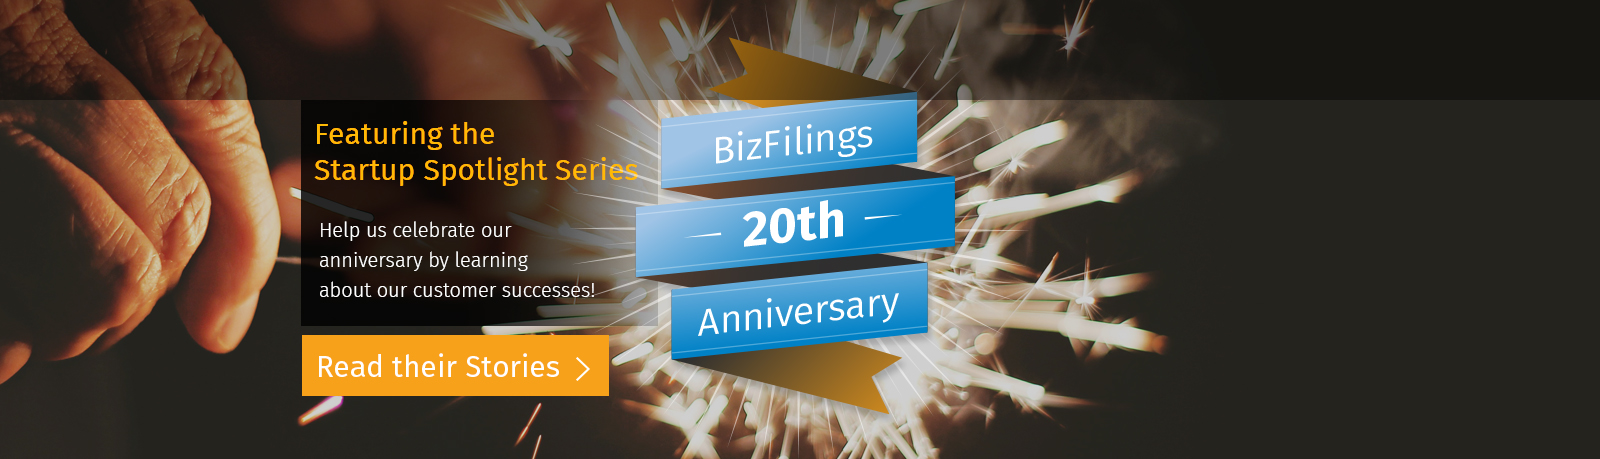 Featuring the Startup Spotlight Series. Help us celebrate our anniversary by learning about our customer successes!